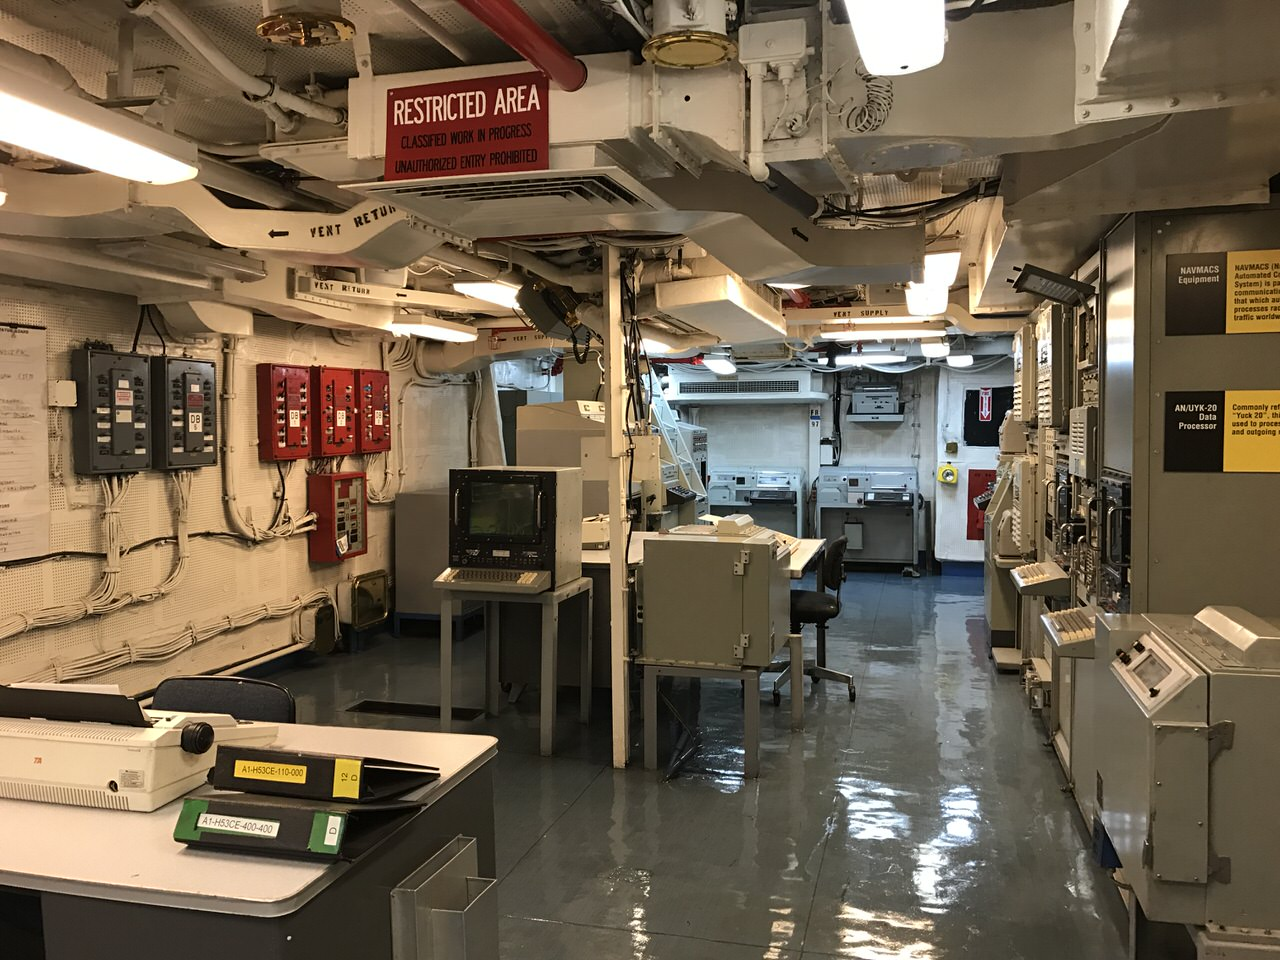 Uss midway museum 0598